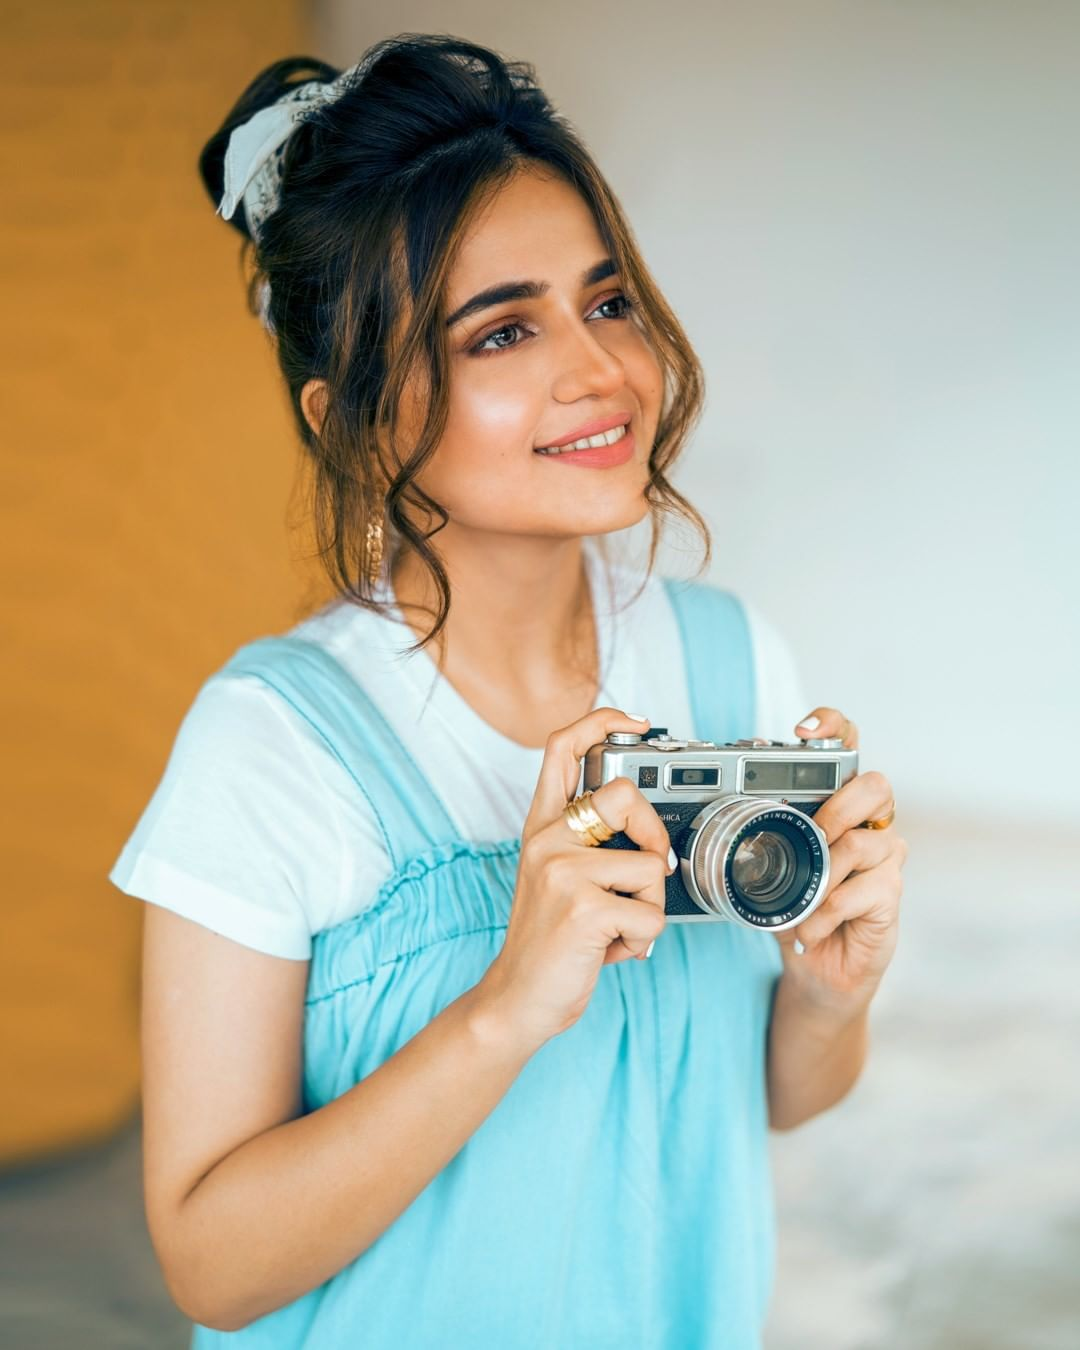 Sumbul Iqbal is Looking Gorgeous in her trendy look for Latest Photo shoot